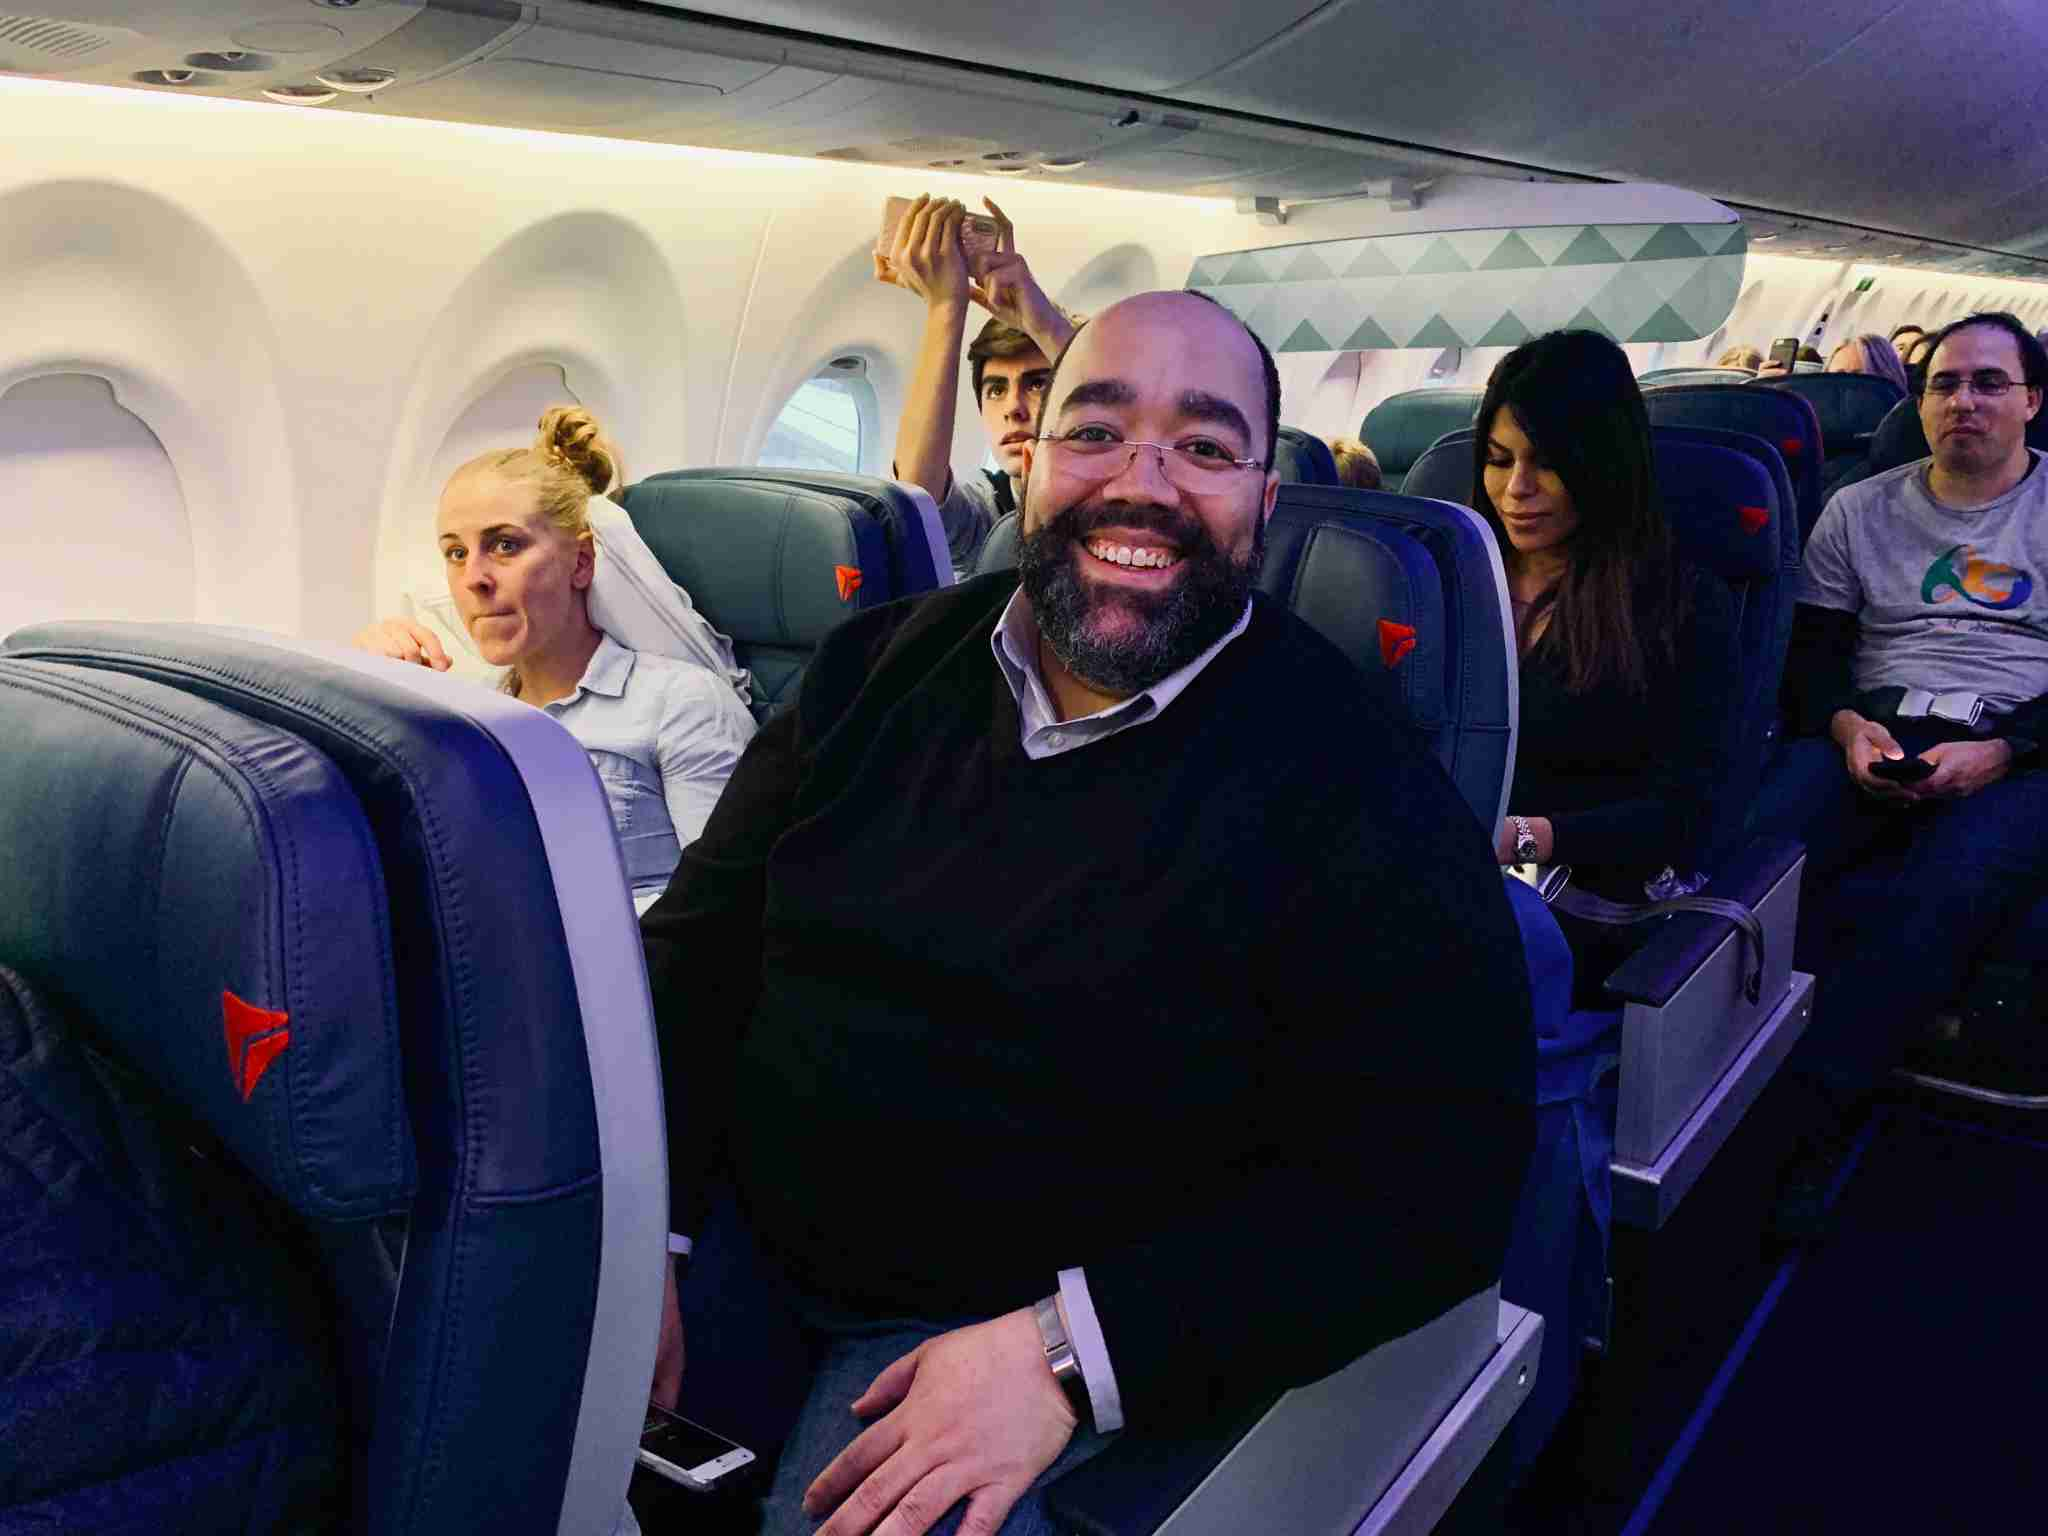 TPG reader Nick settles in for a day of flying aboard Delta